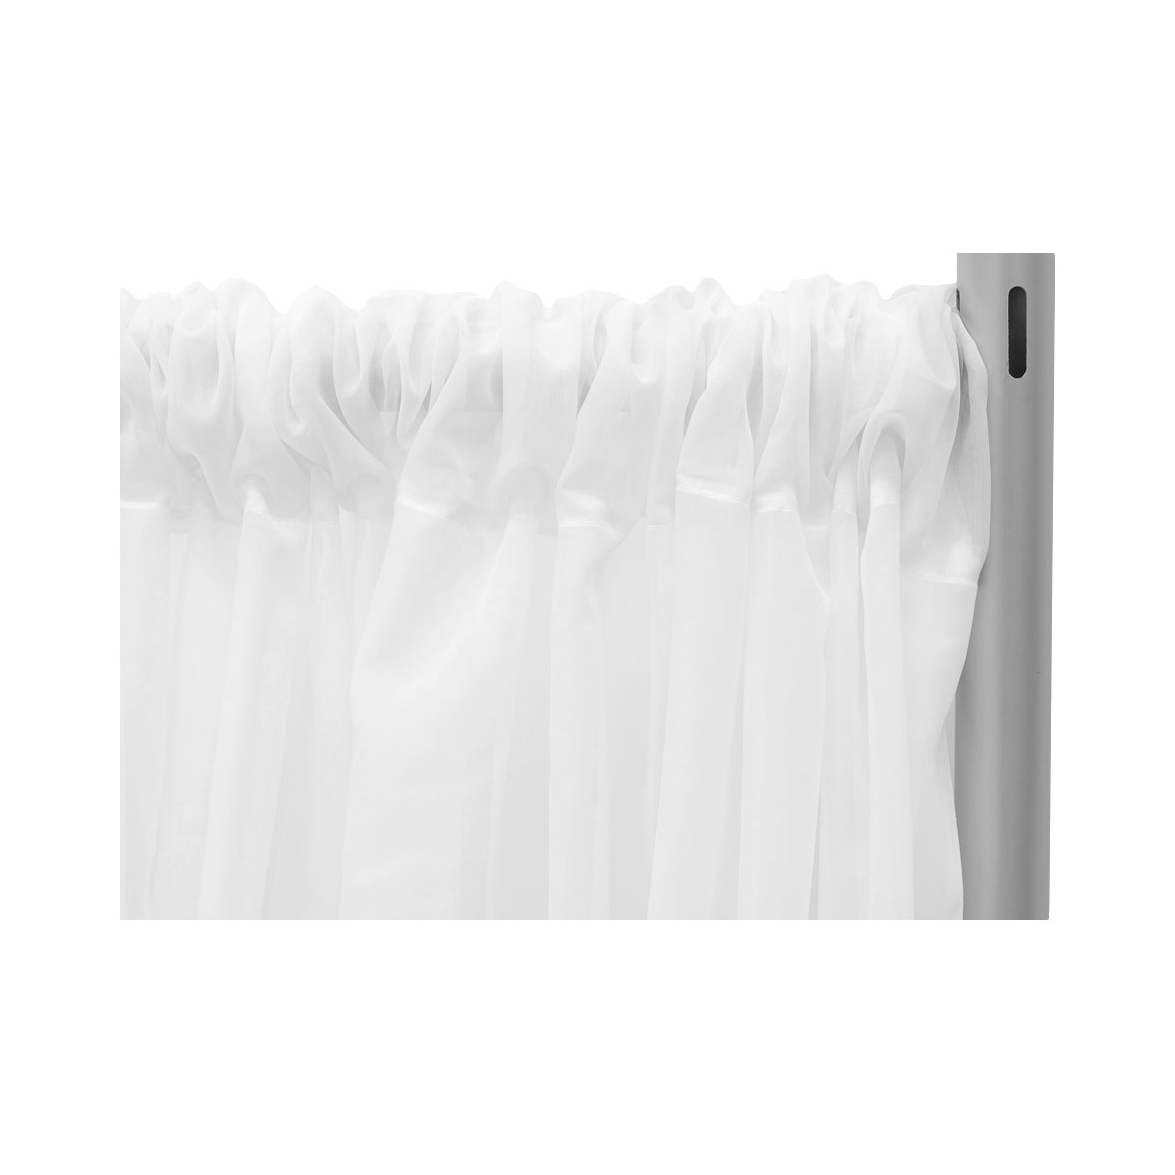 "*fr* 10ft Wide X 12ft Long Sheer Voile Curtain Panel W/ 4"" Pockets For Most Recent Elegant Crushed Voile Ruffle Window Curtain Pieces (View 18 of 20)"